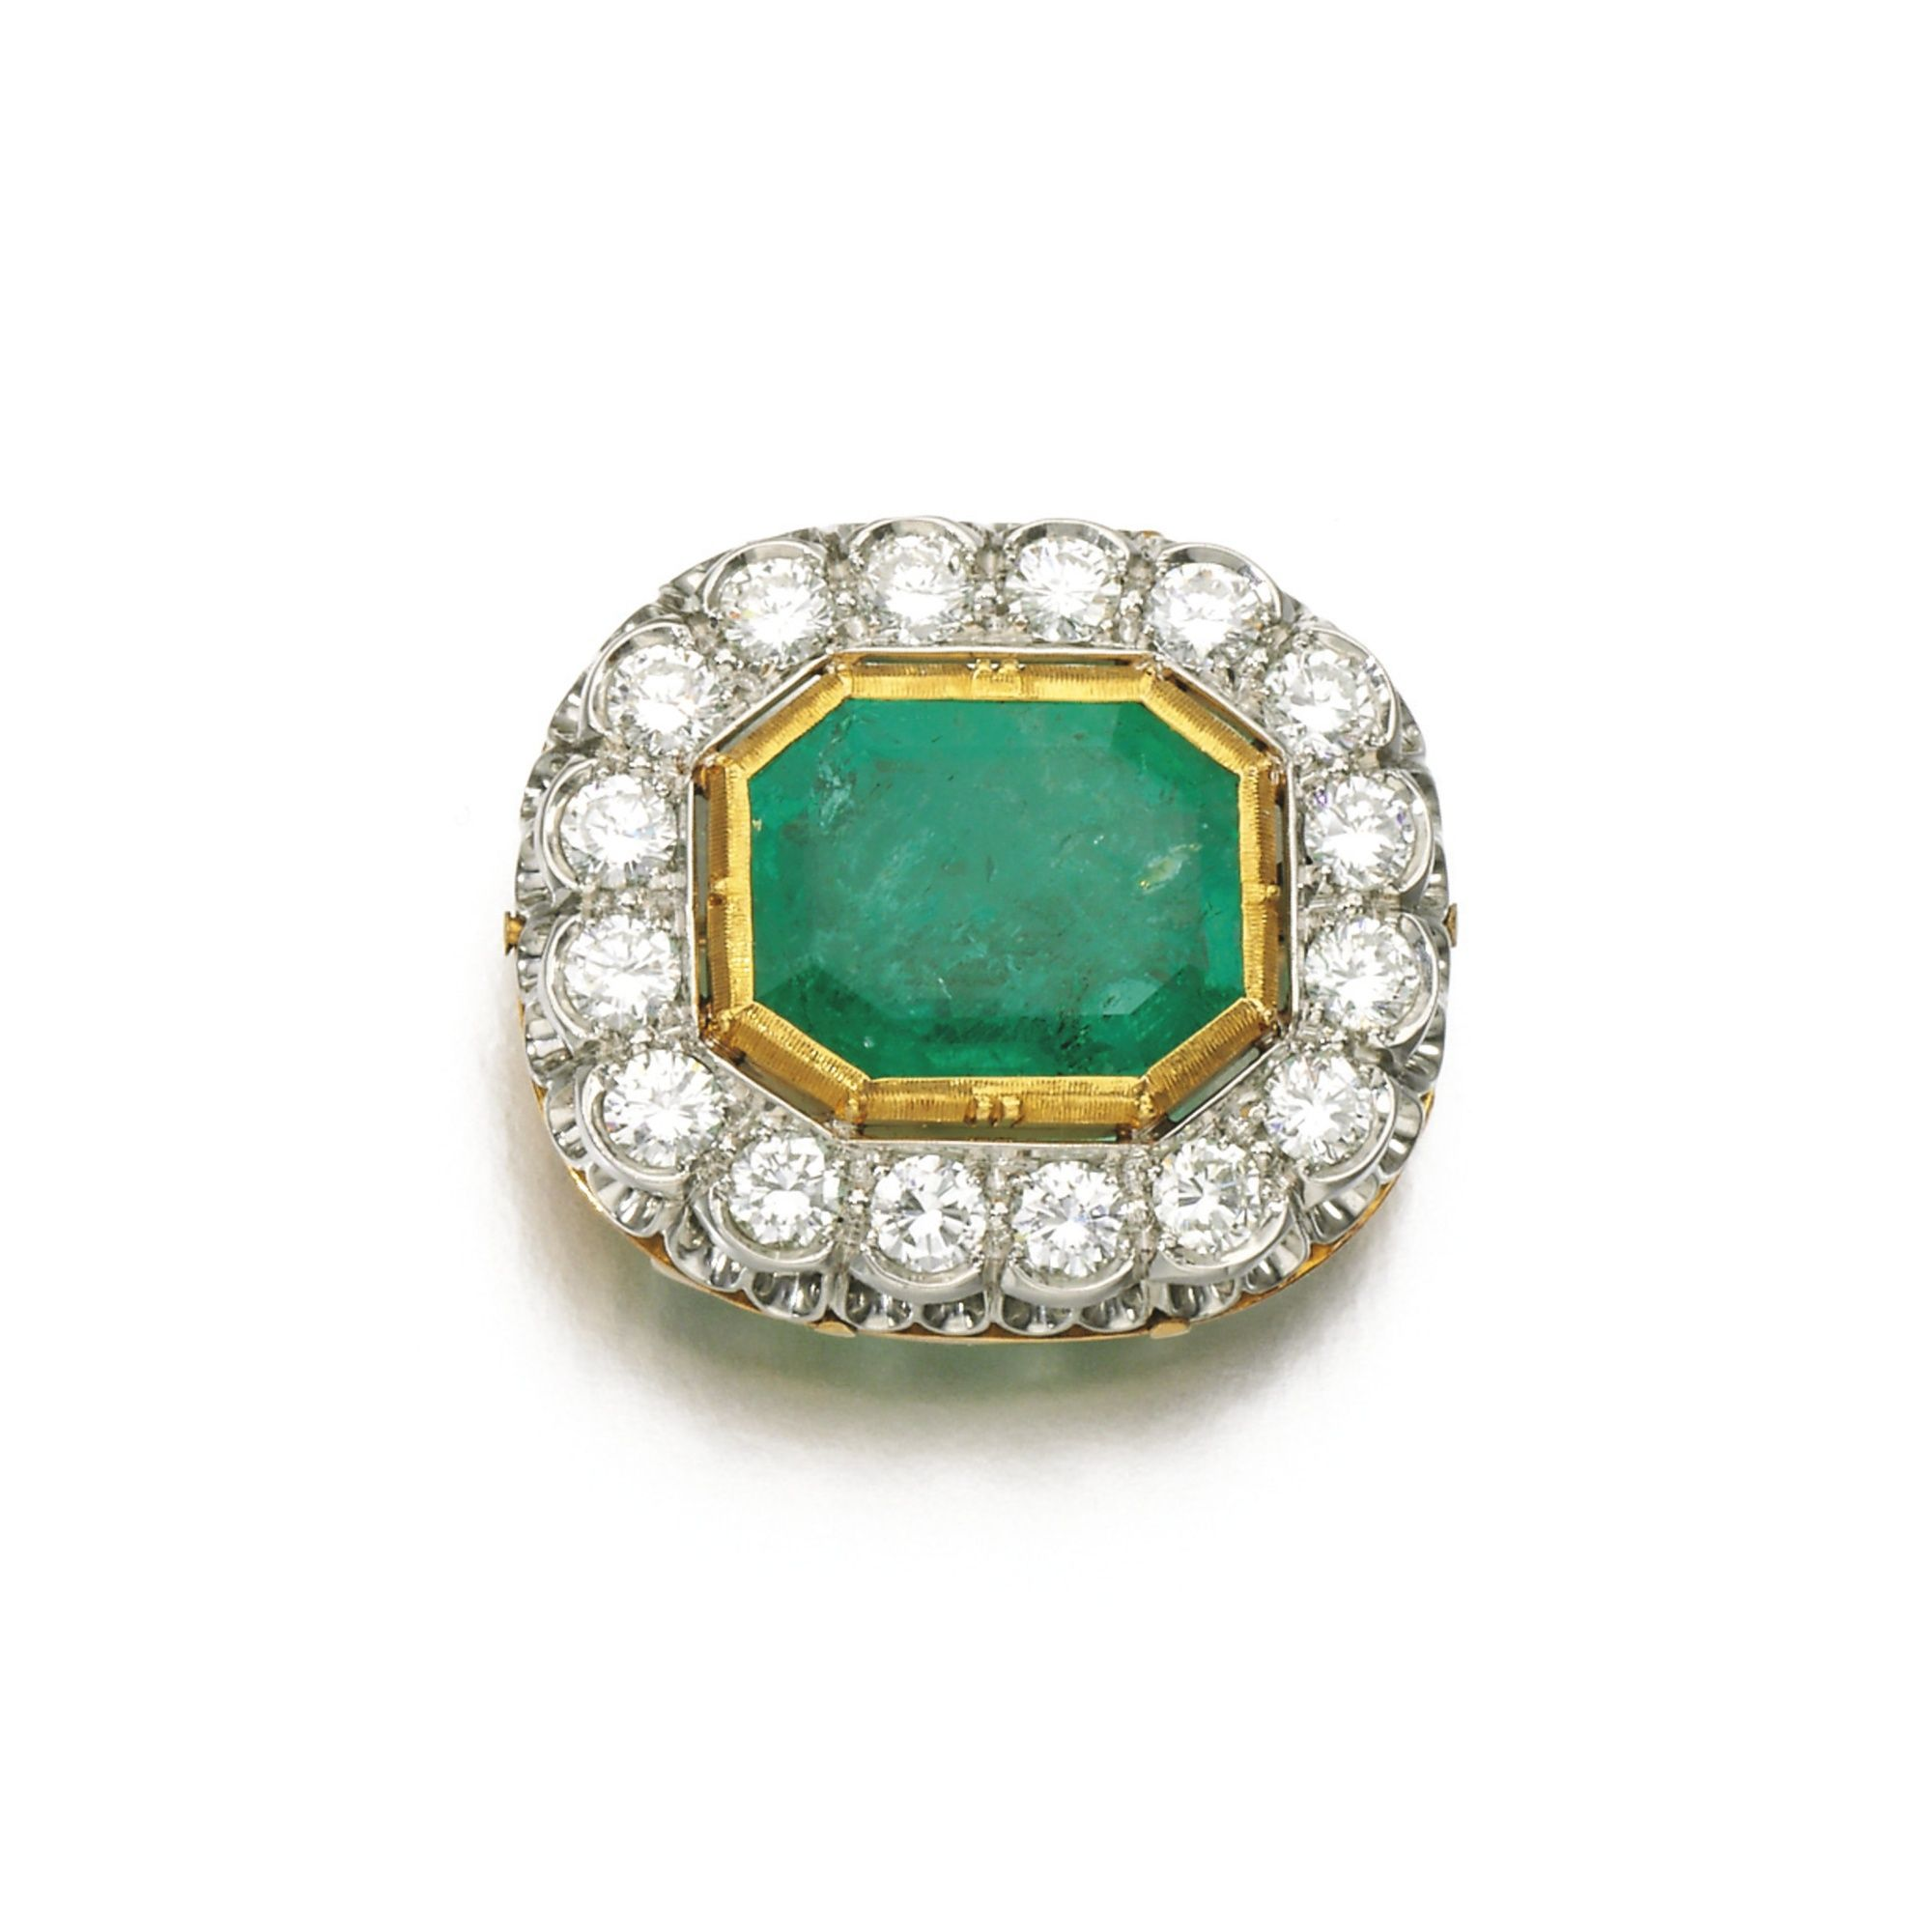 Shani Emerald: Emerald And Diamond Brooch Set With A Step-cut Emerald Within A Border Of Brilliant-cut Diamonds